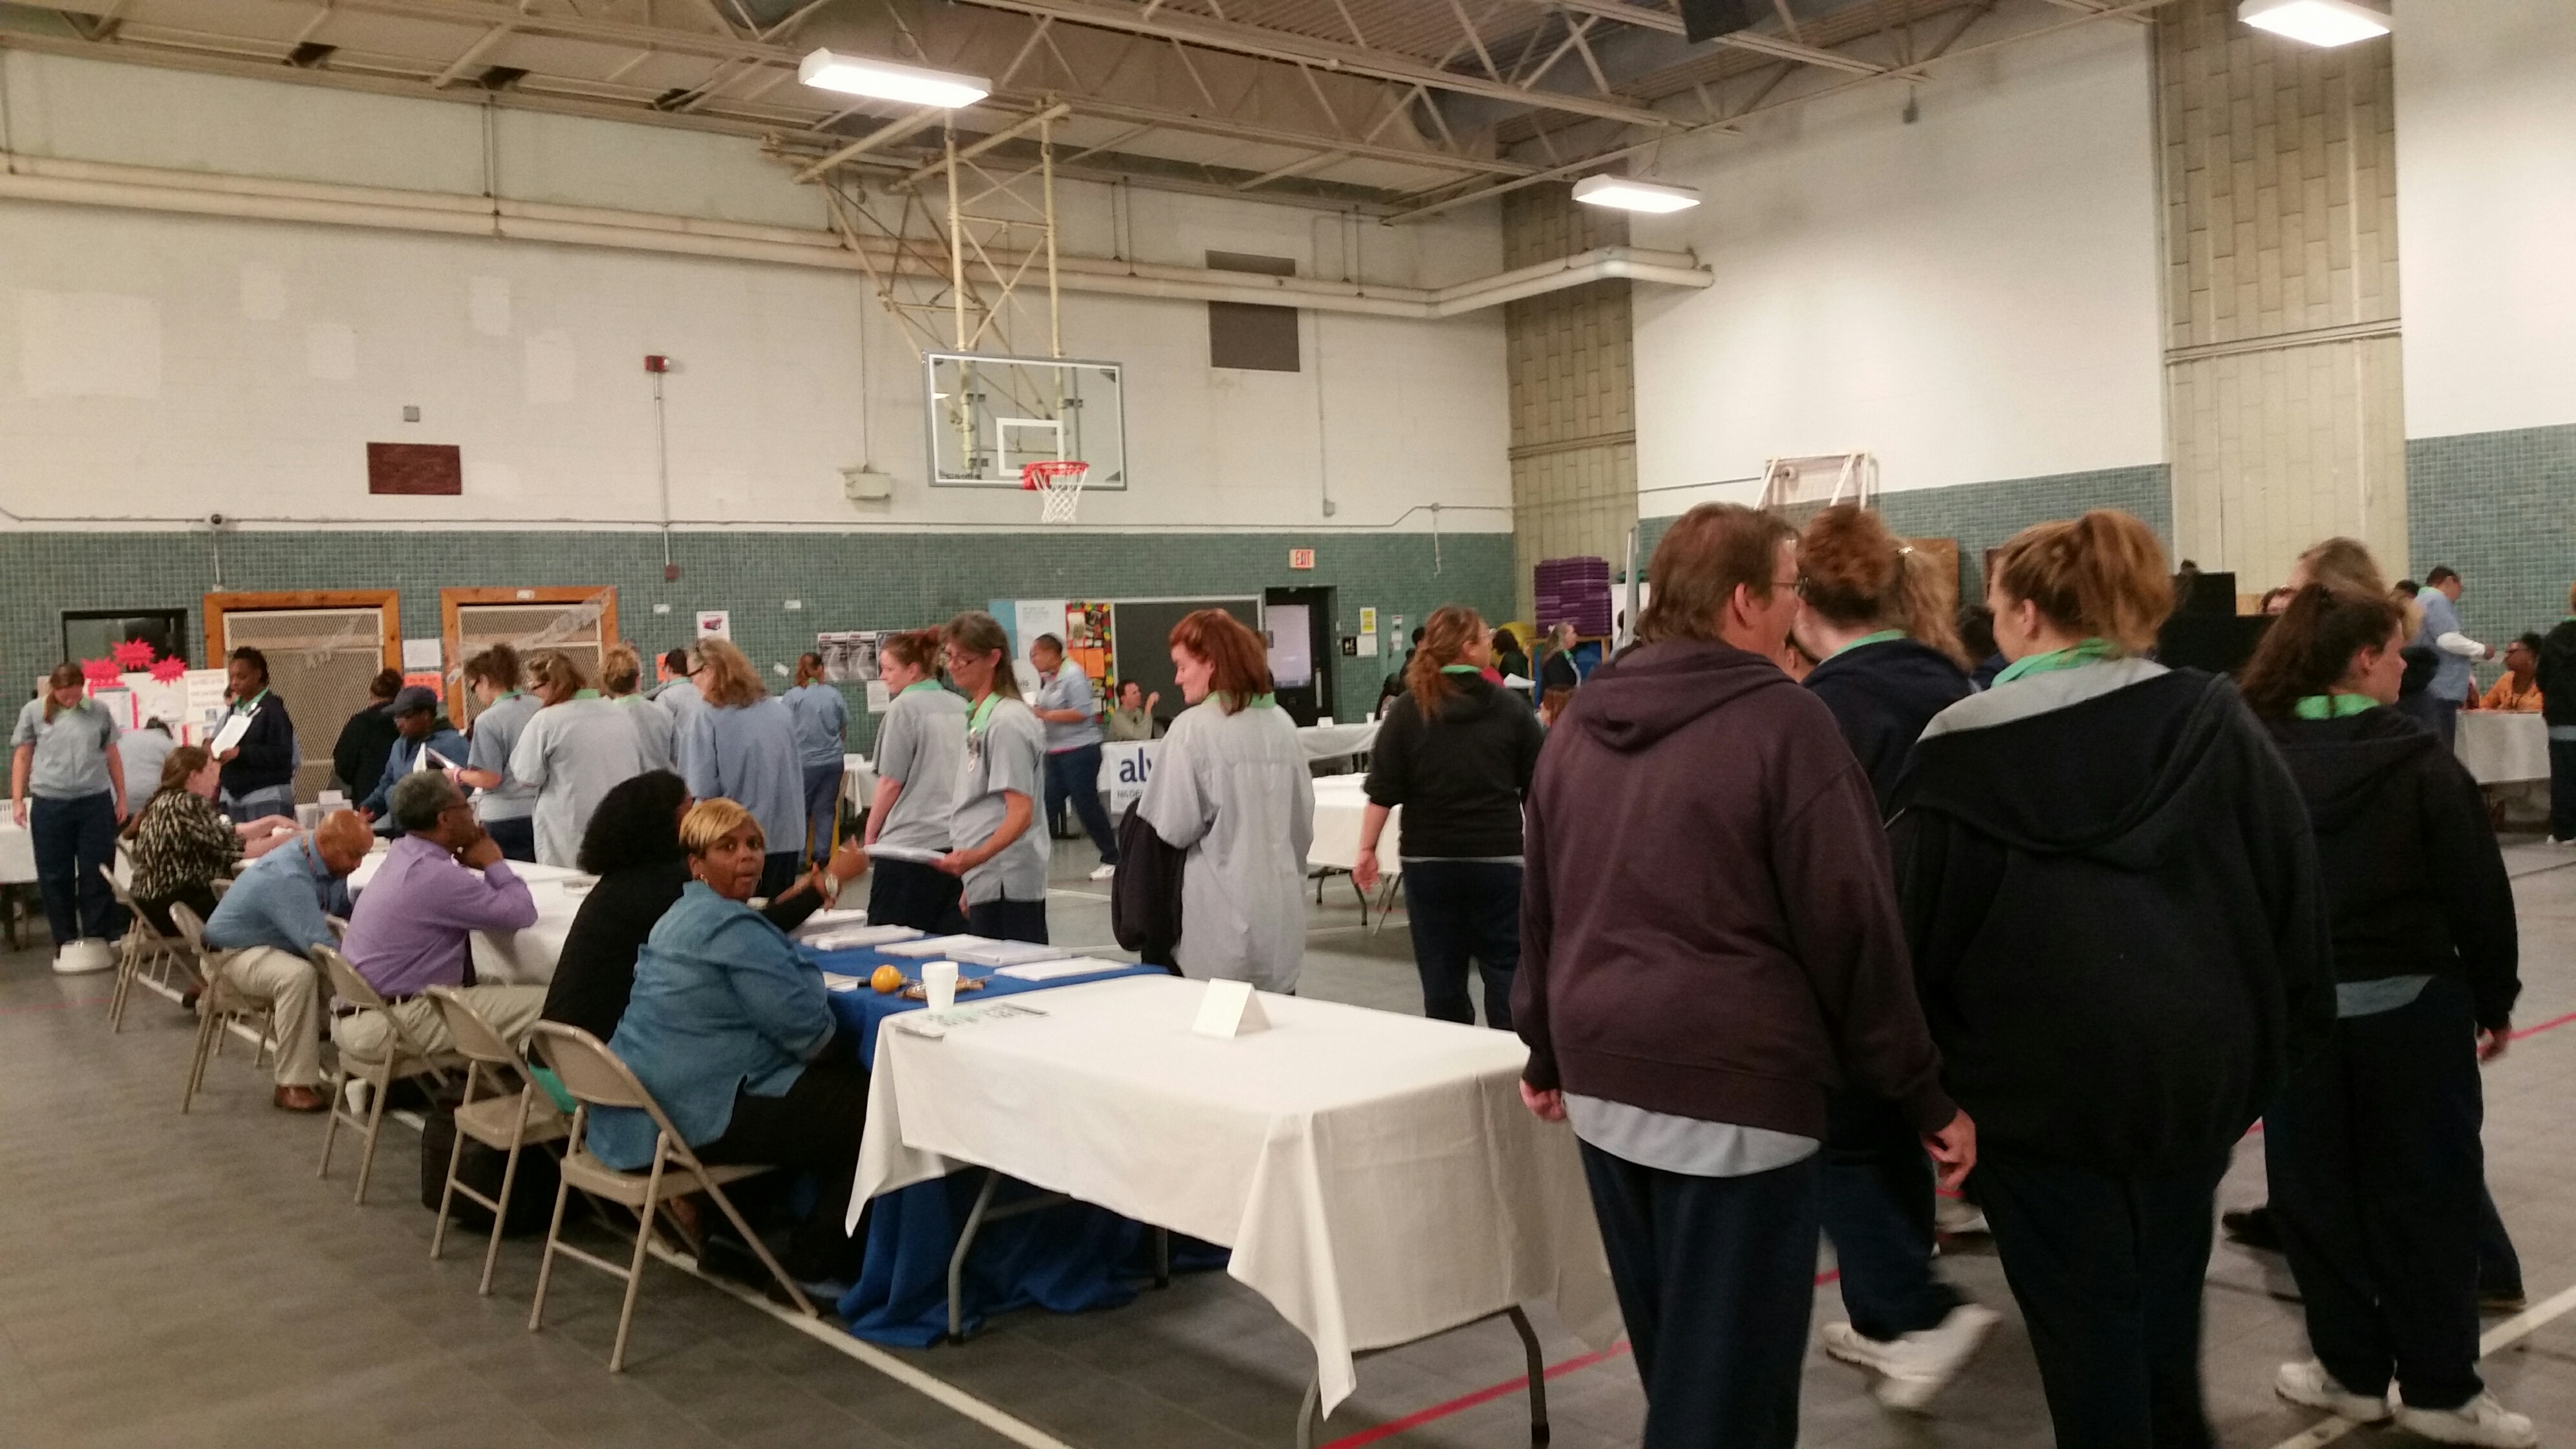 ORW Hosts Reentry/Resource Fair